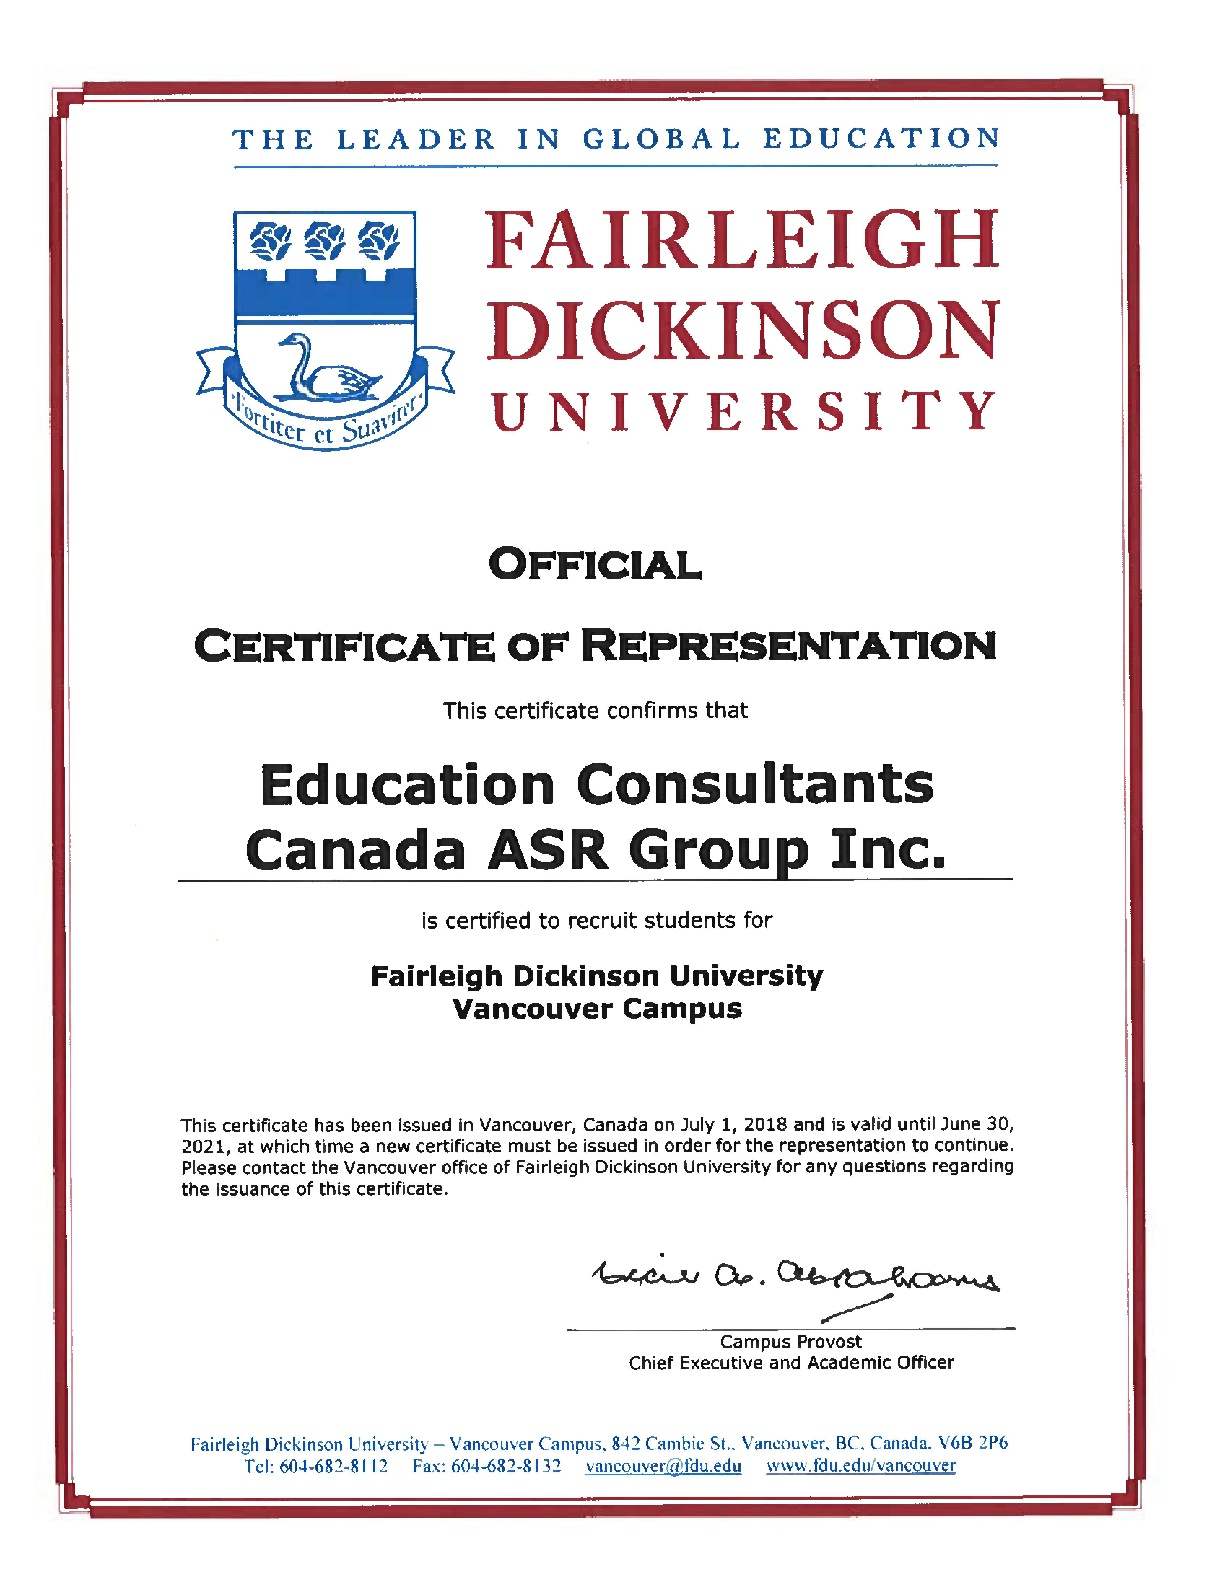 Education Consultants Canada Certified by Fairleigh Dickinson University for the student's recruitment